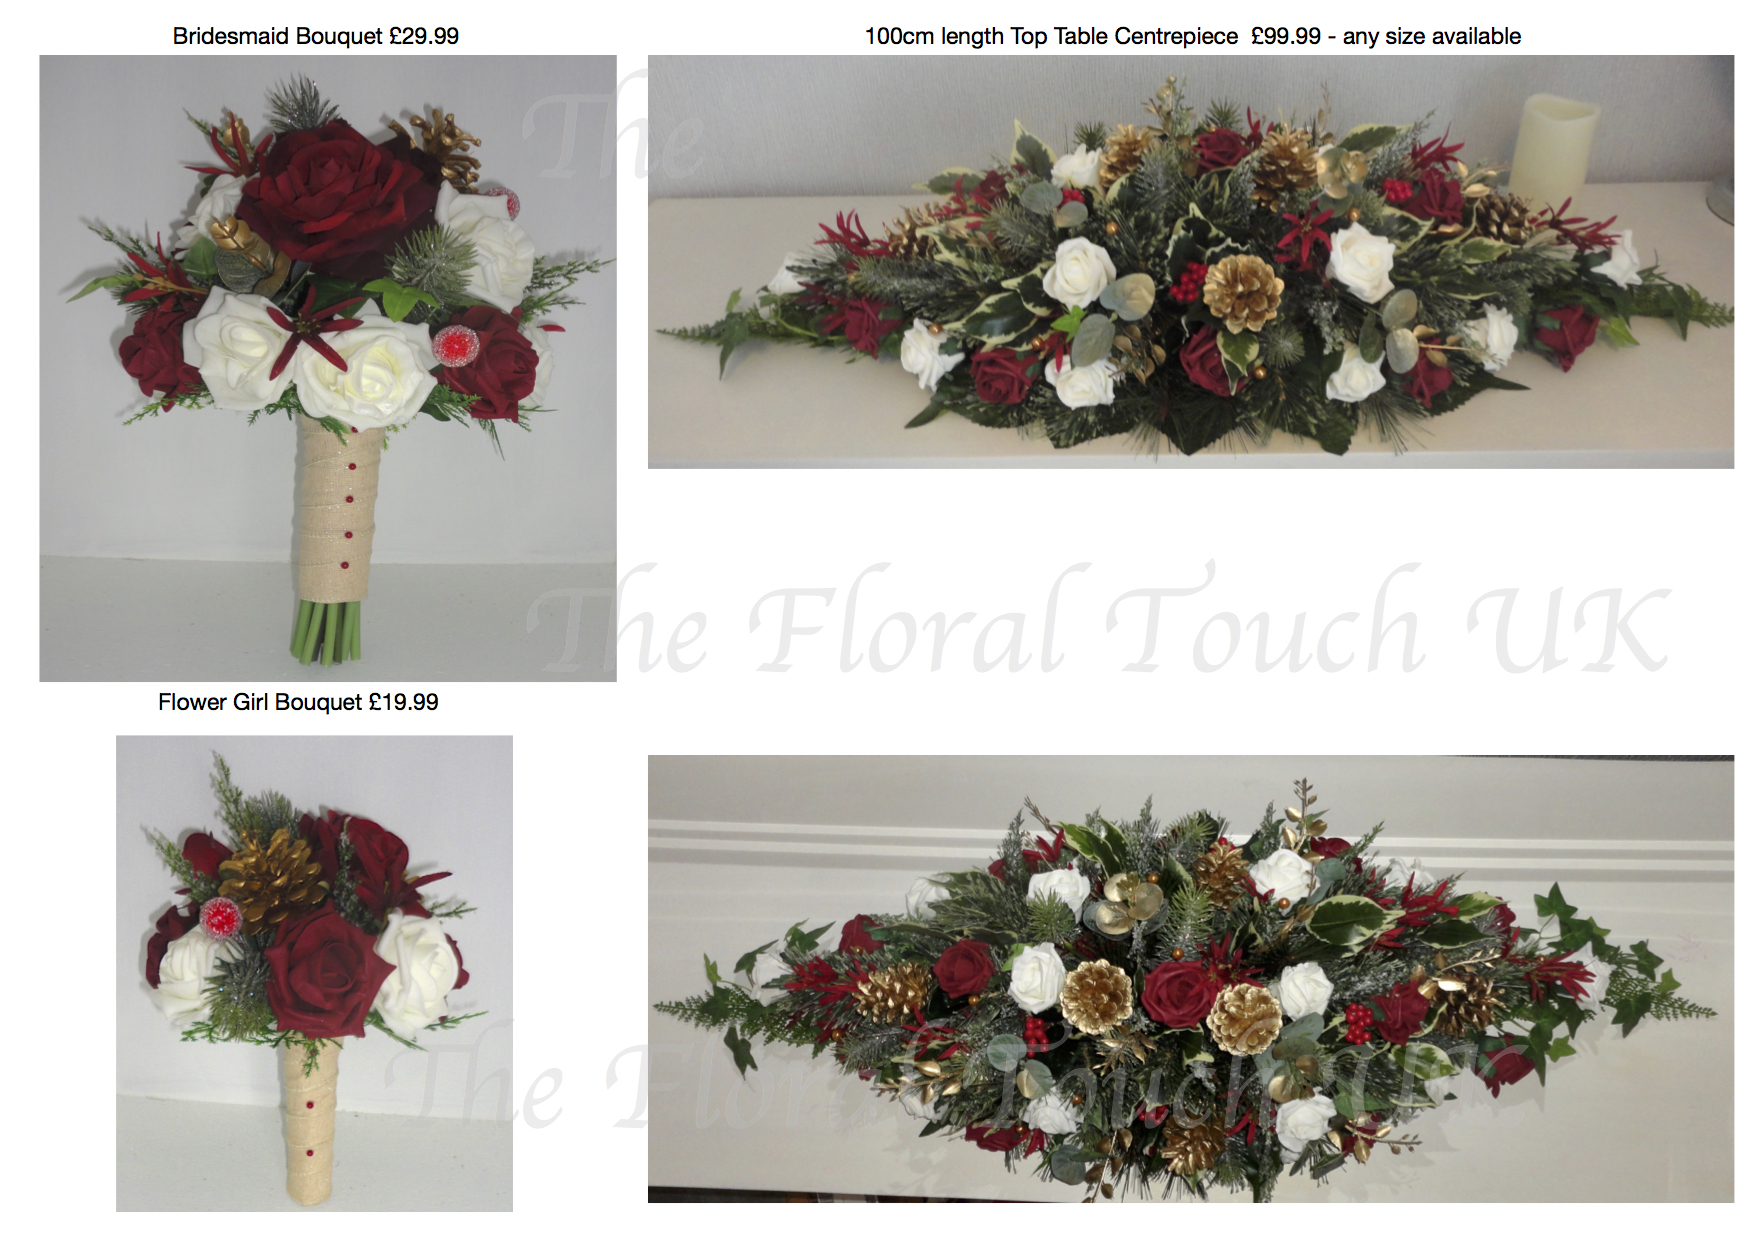 Christmas winter wedding bouquets you may also like matching christmas wreath centrepiece dusky pink cream bridal bouquet junglespirit Choice Image